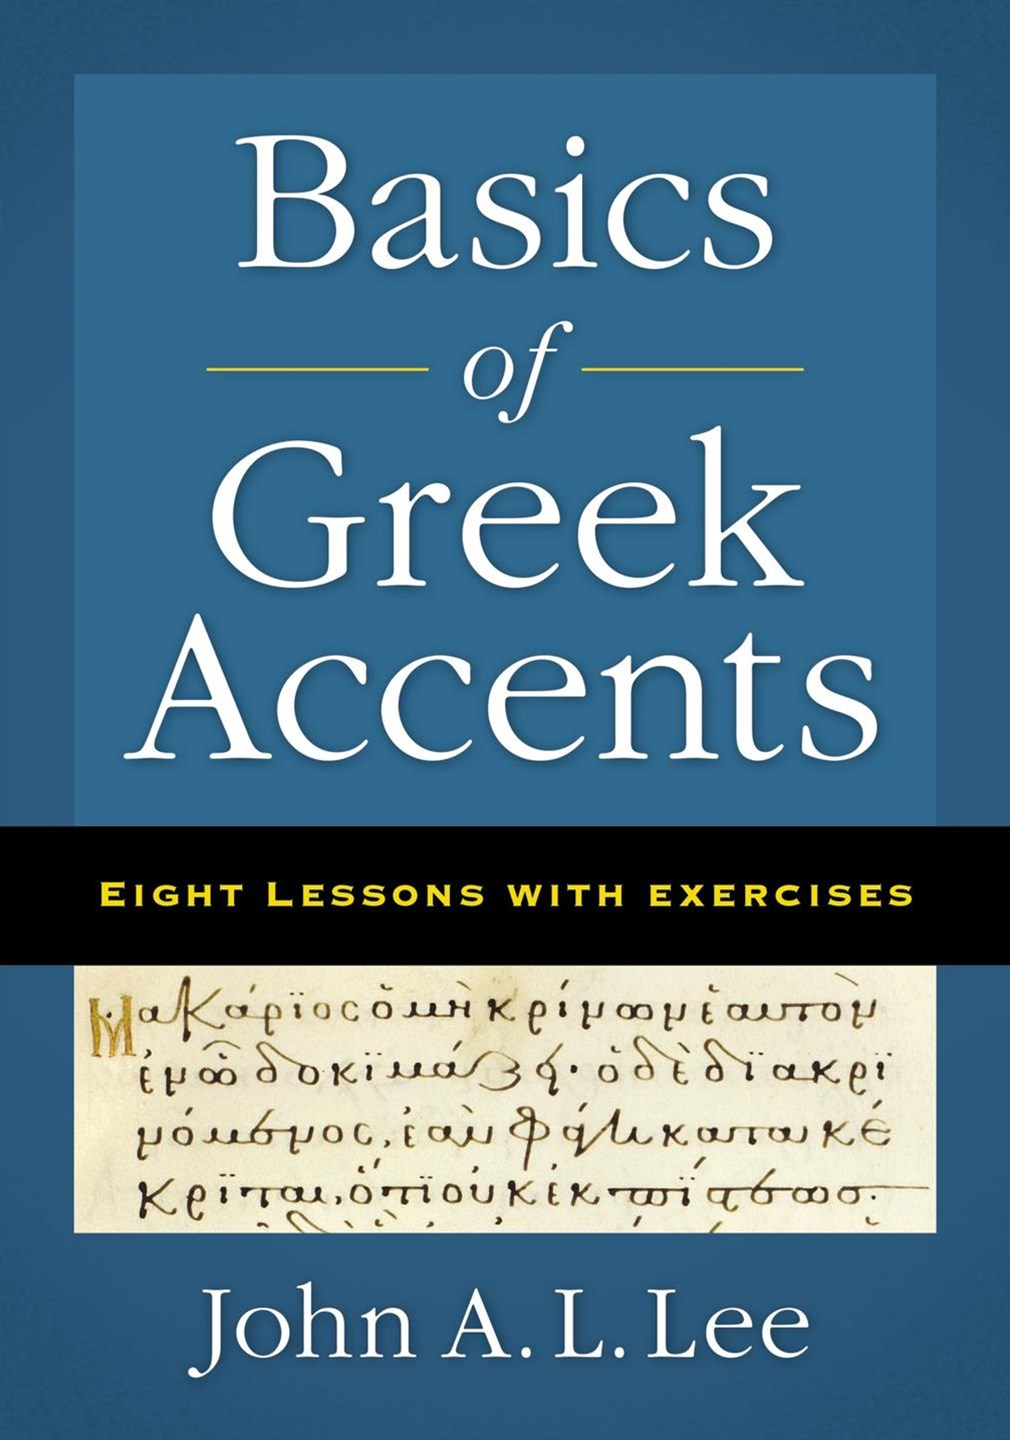 Basics Of Greek Accents: Eight Lessons With Exercises